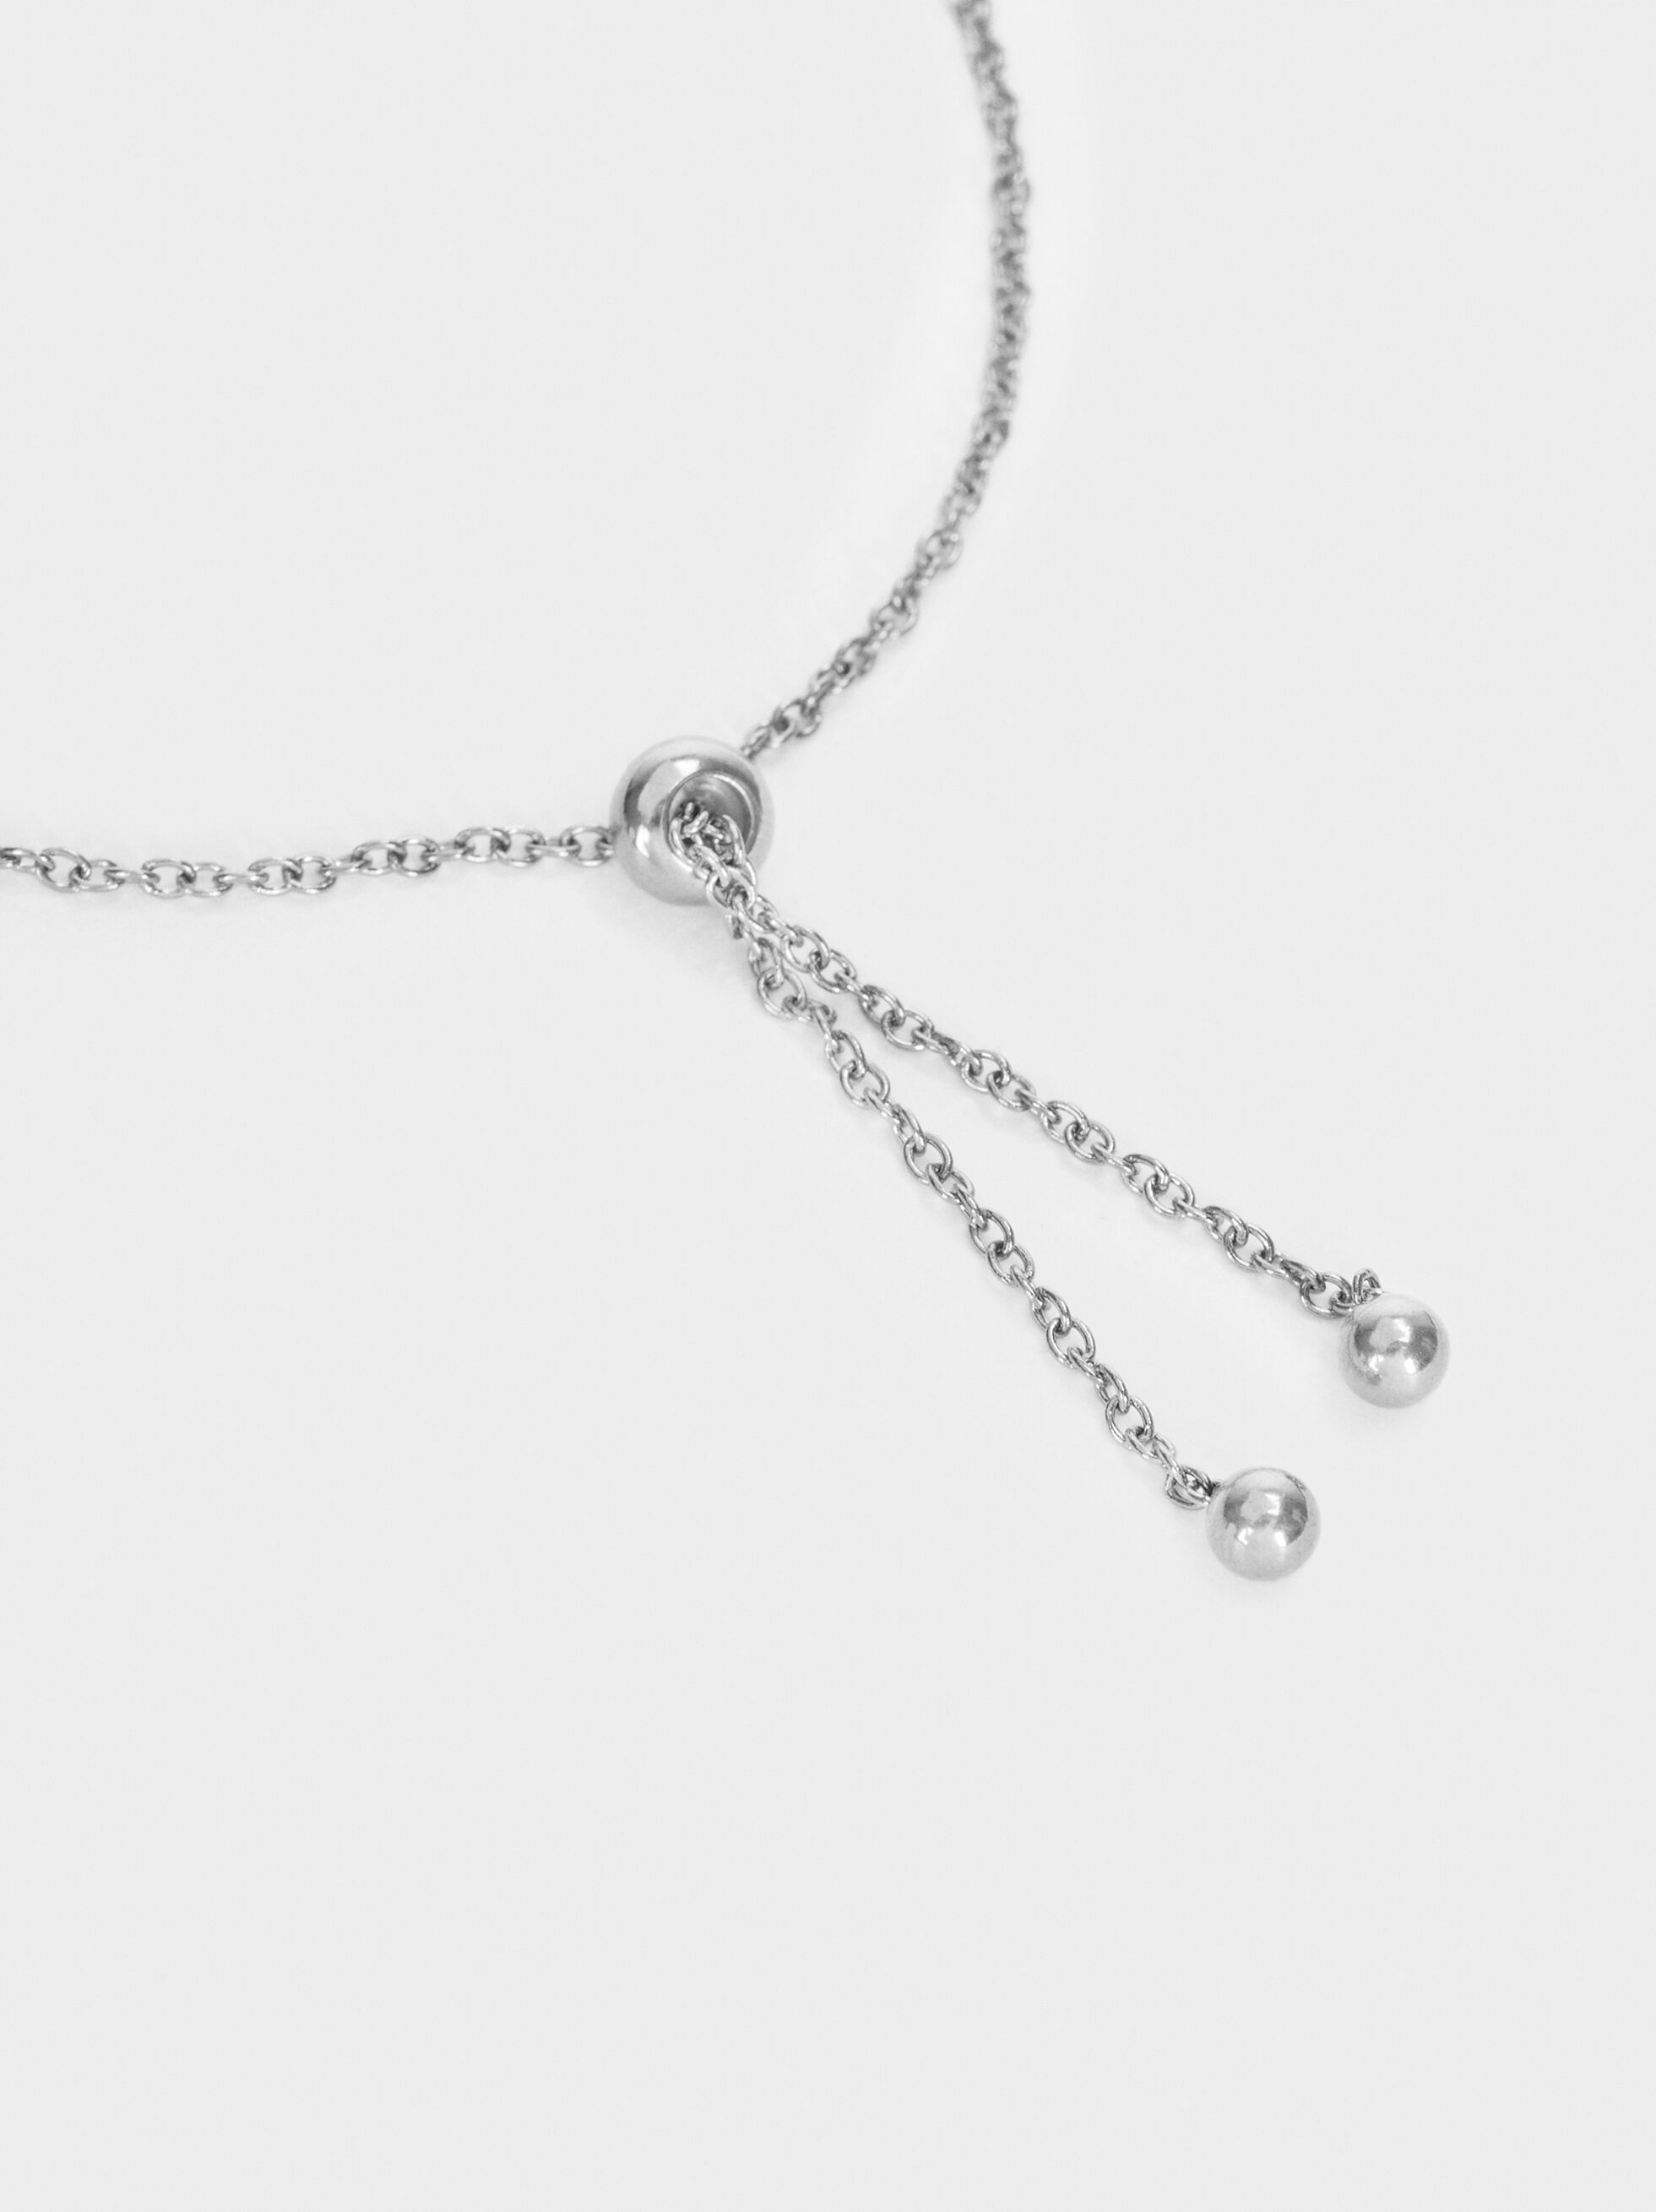 Stainless Steel Bracelet With Silver-Plated Heart, Silver, hi-res